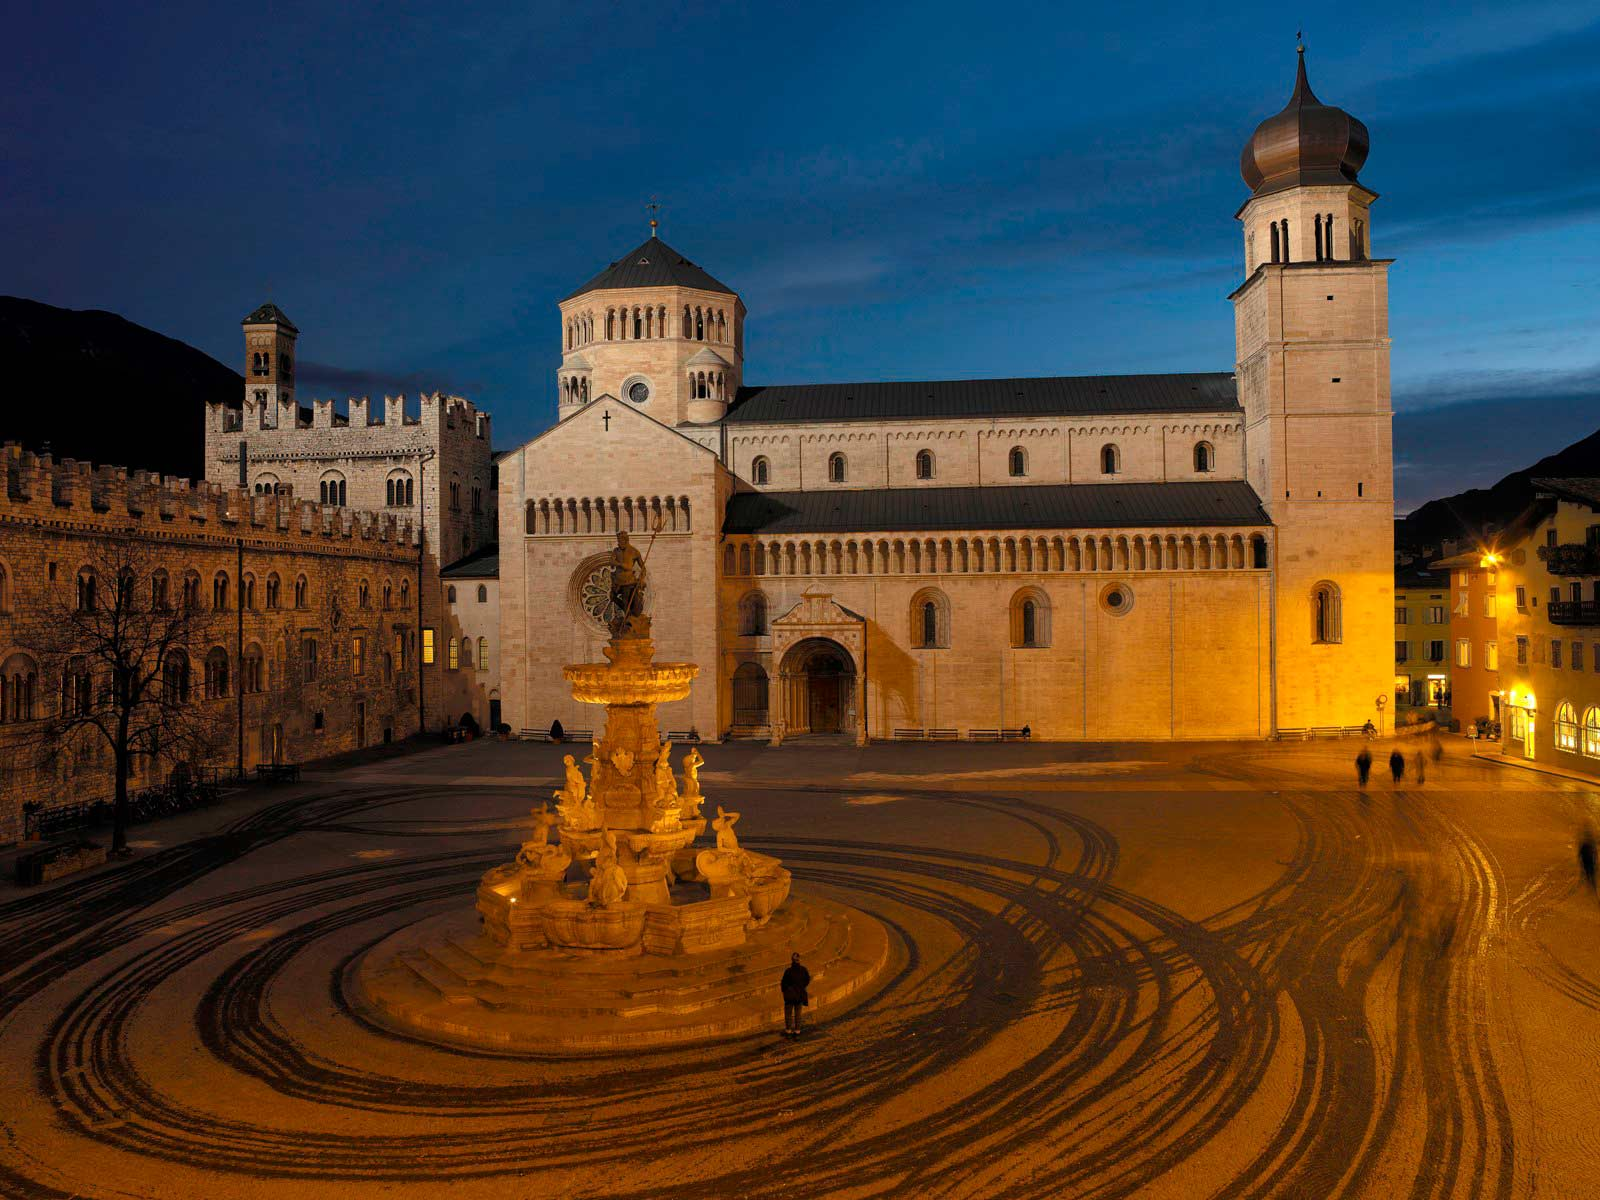 The town of Trento - Trentino